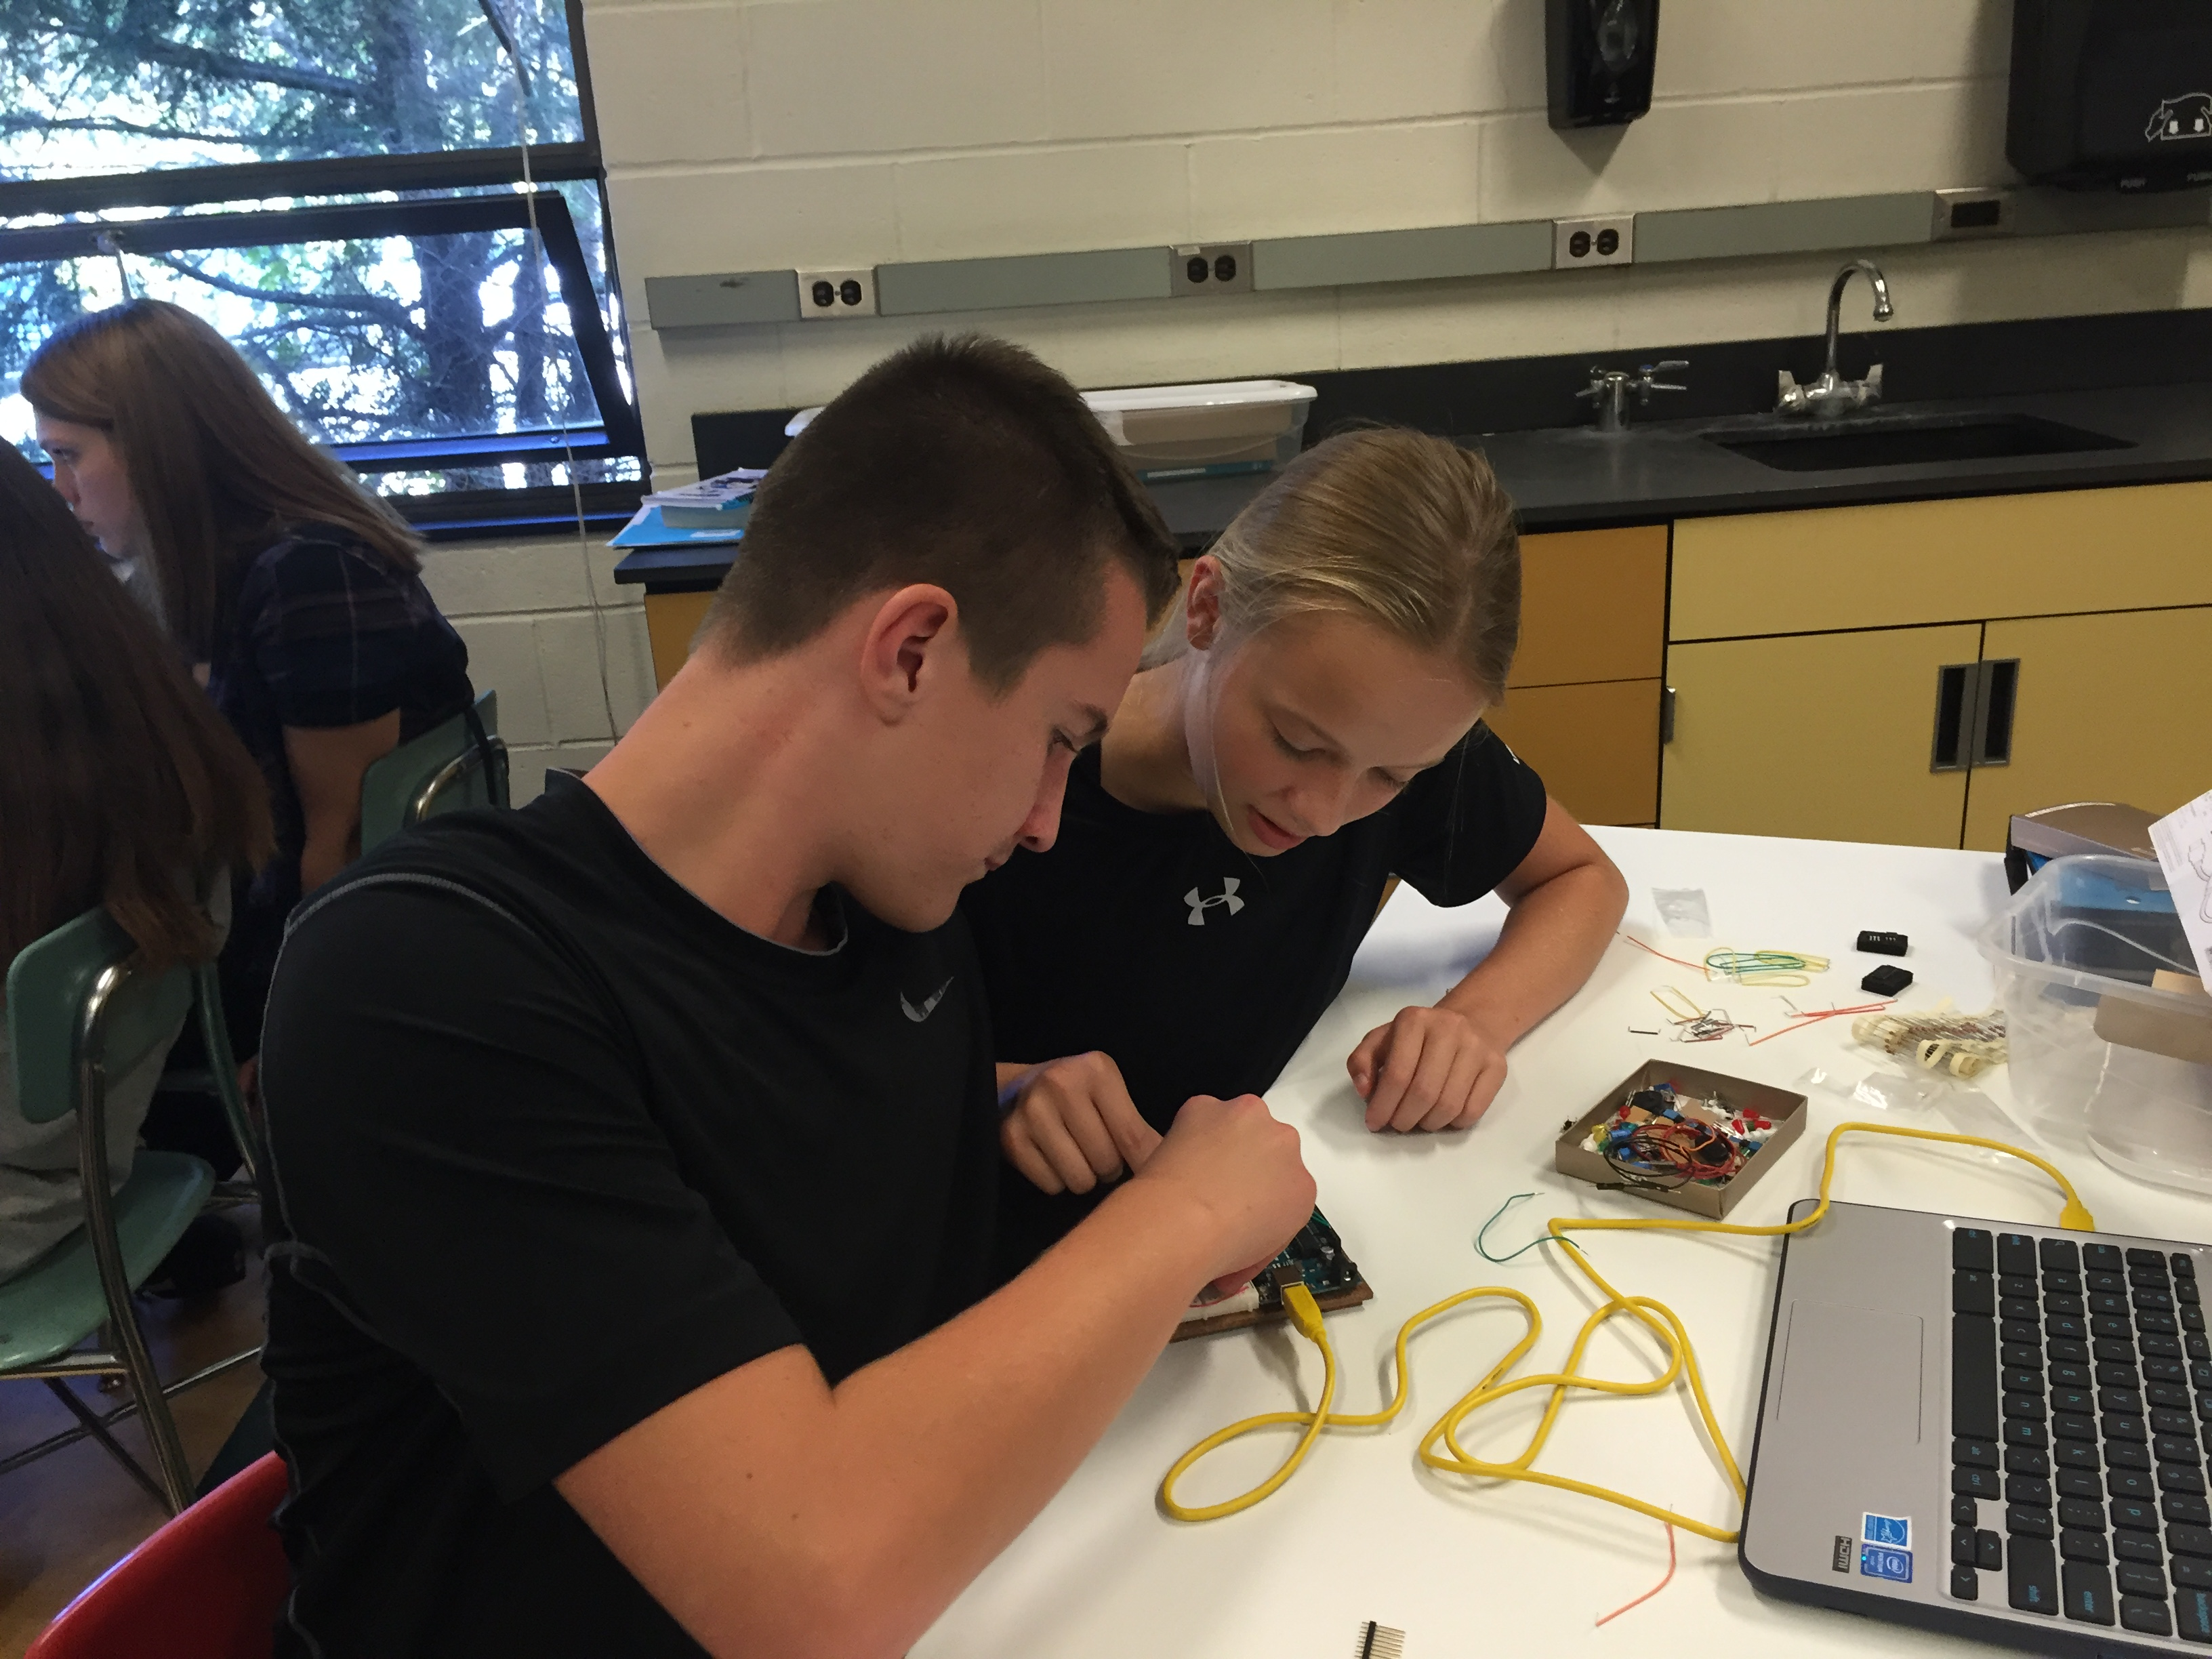 Two students working on an arduino device.